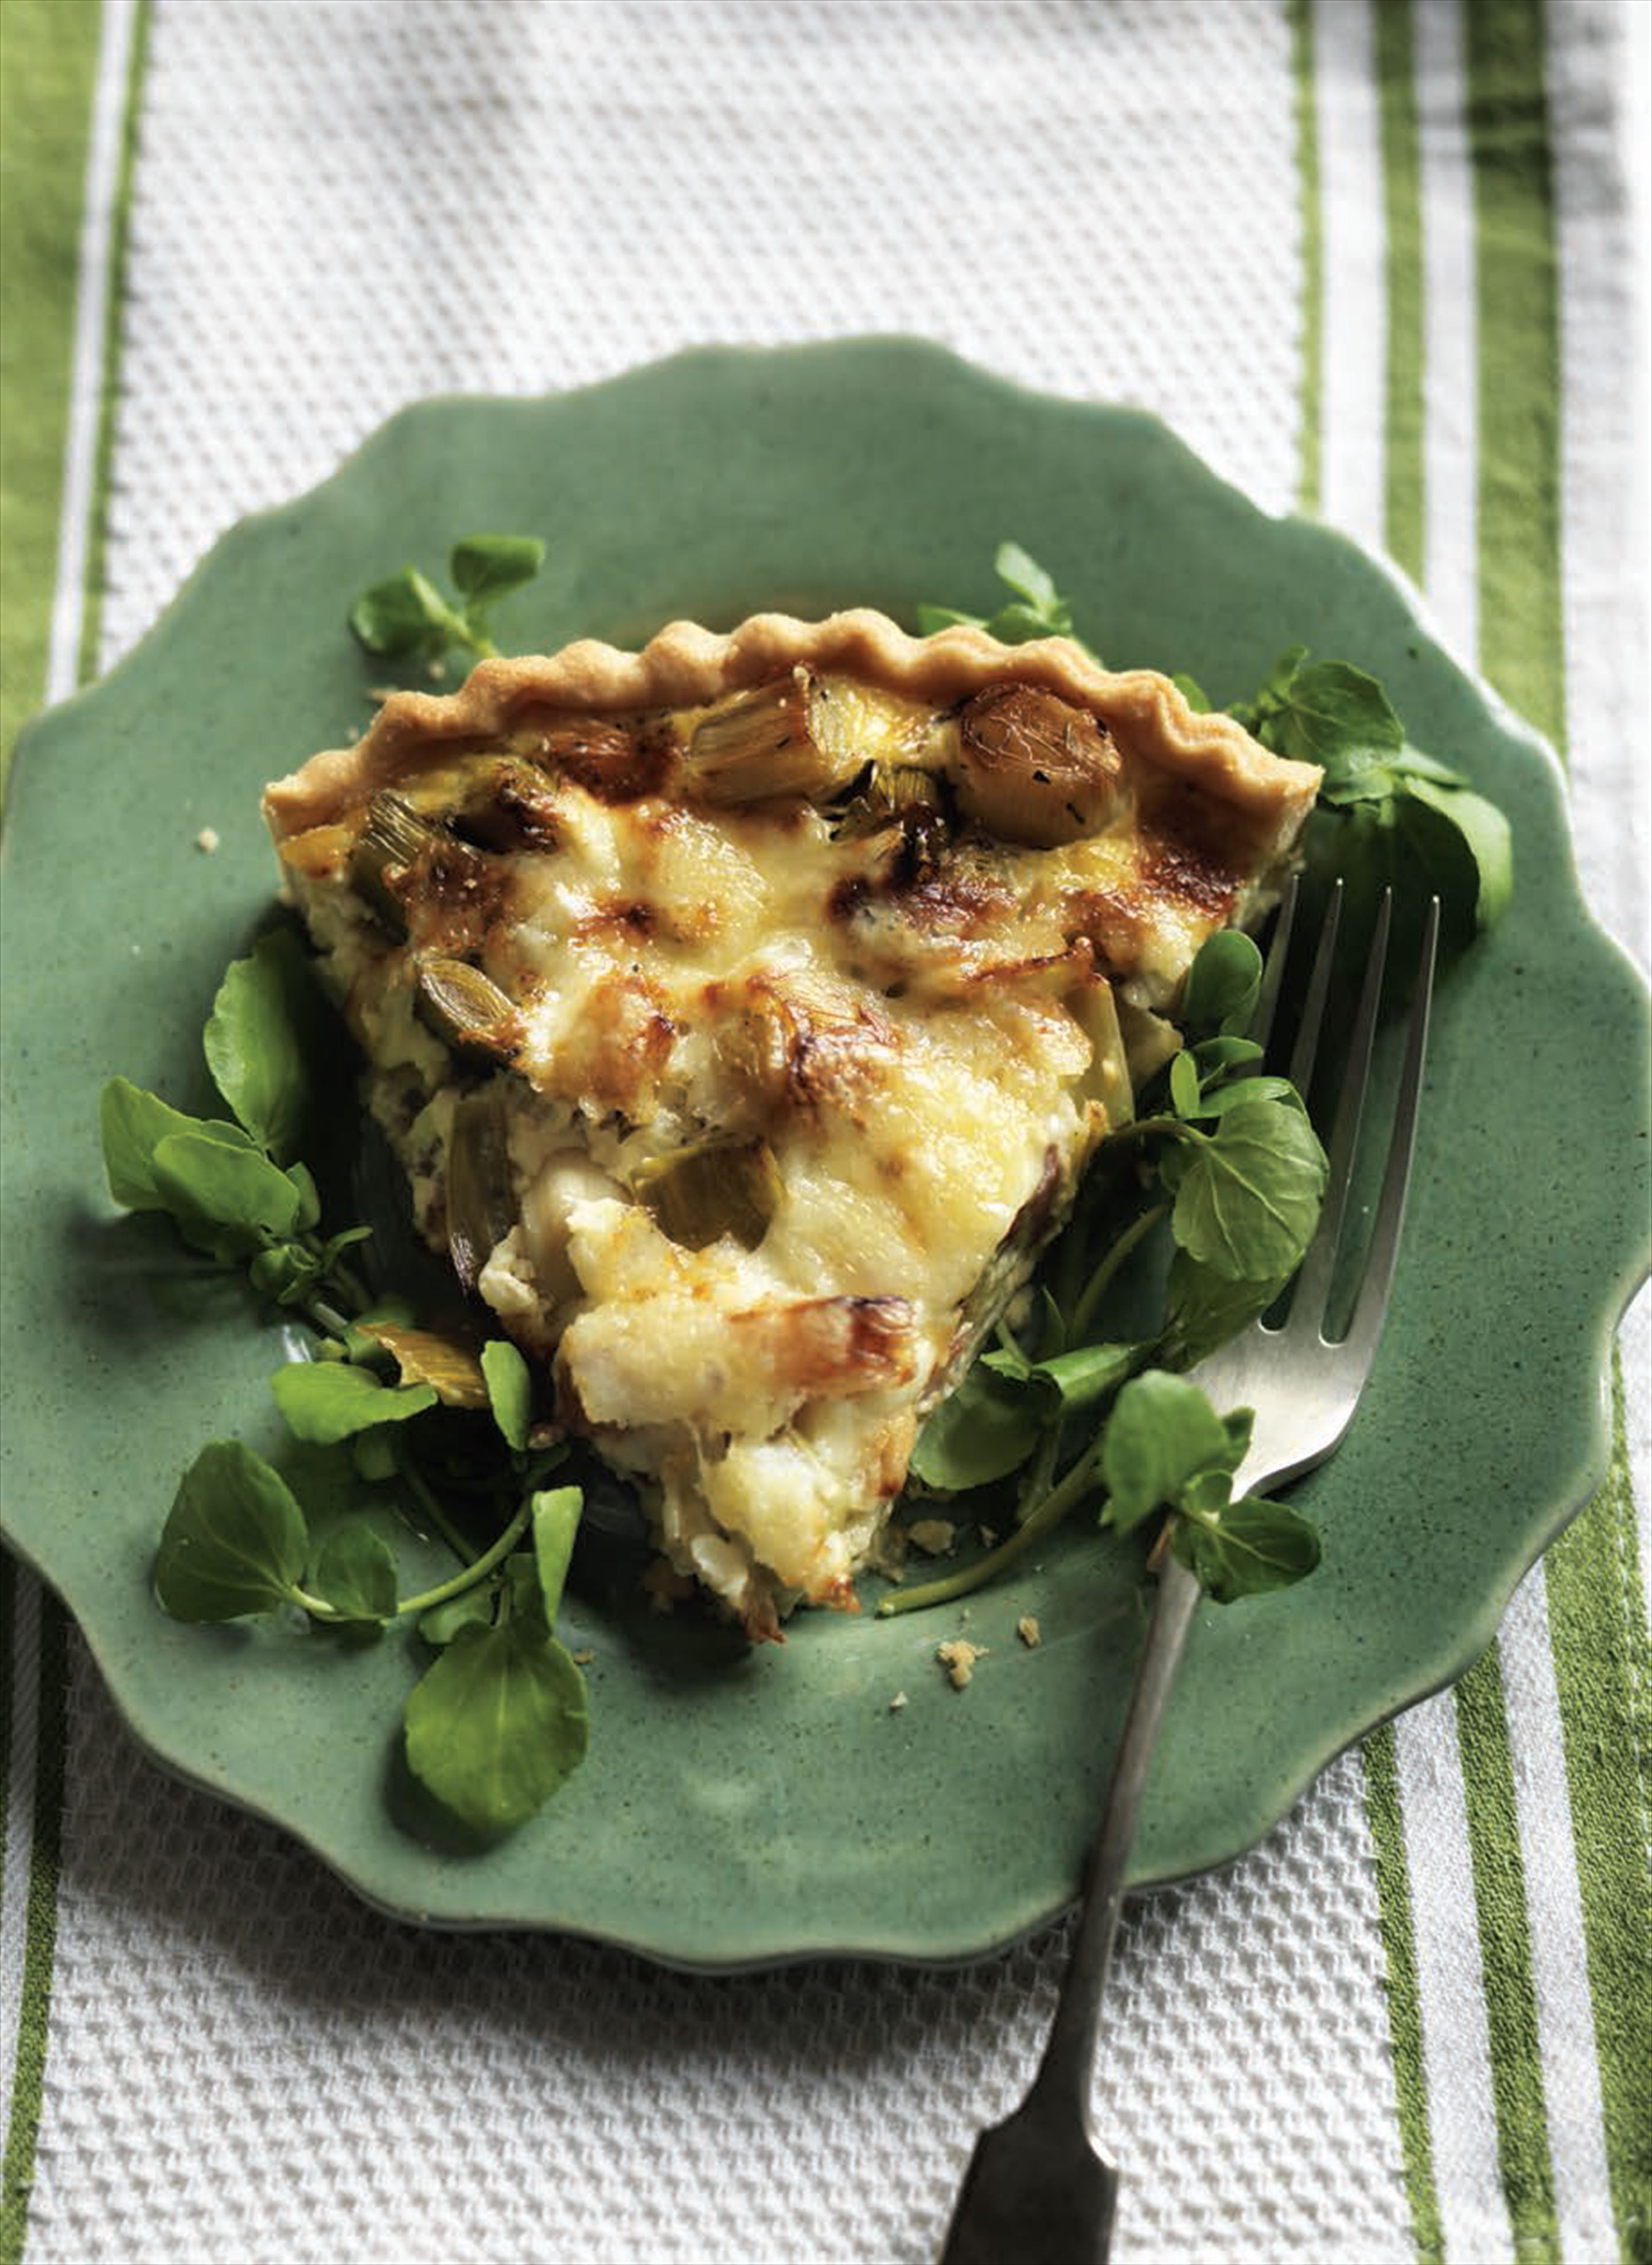 Leek, bacon and cheese quiche